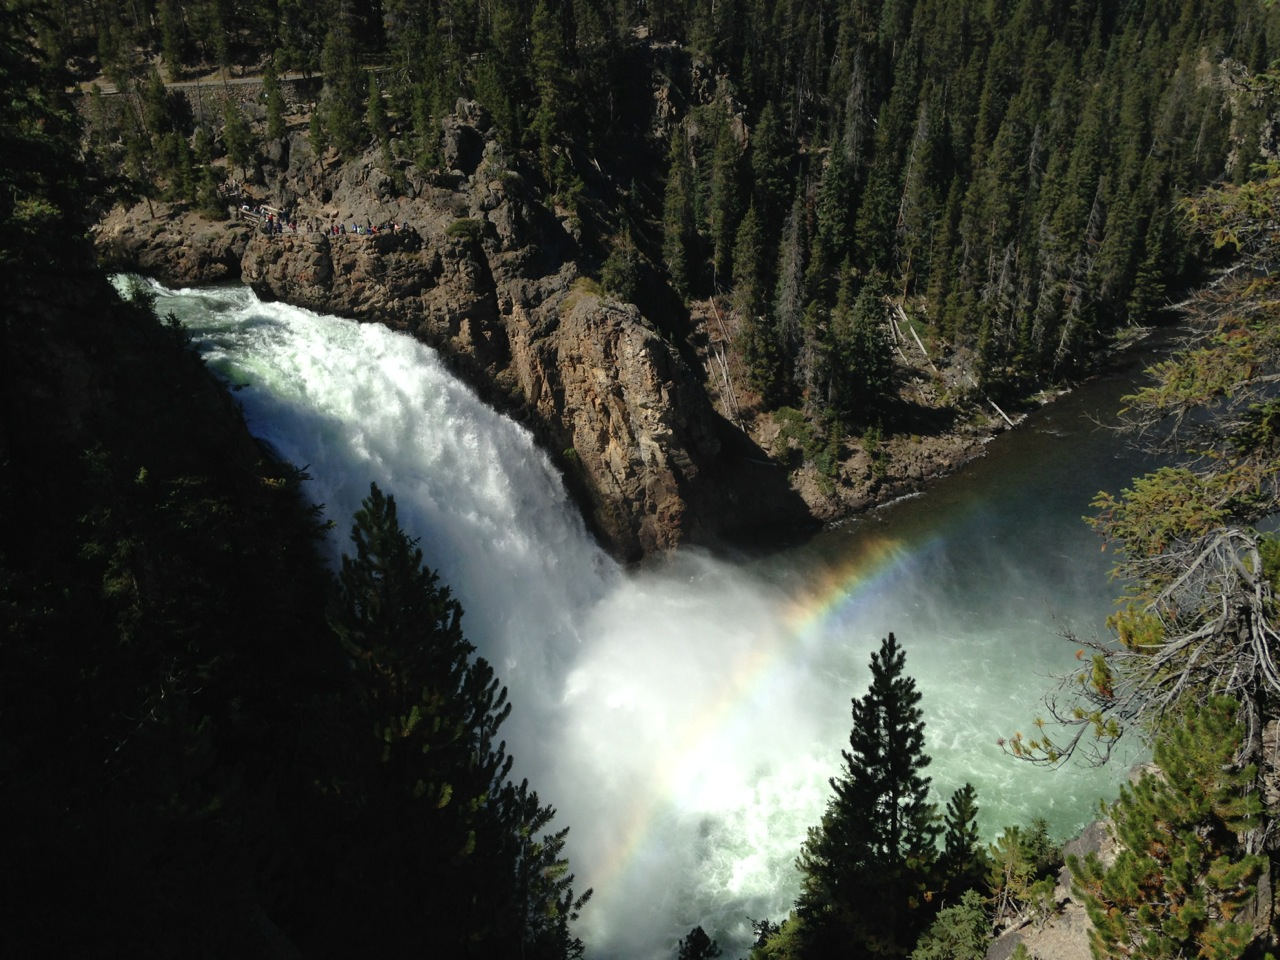 Upper Falls and its rainbow. I was hiking right along the edge of the canyon.